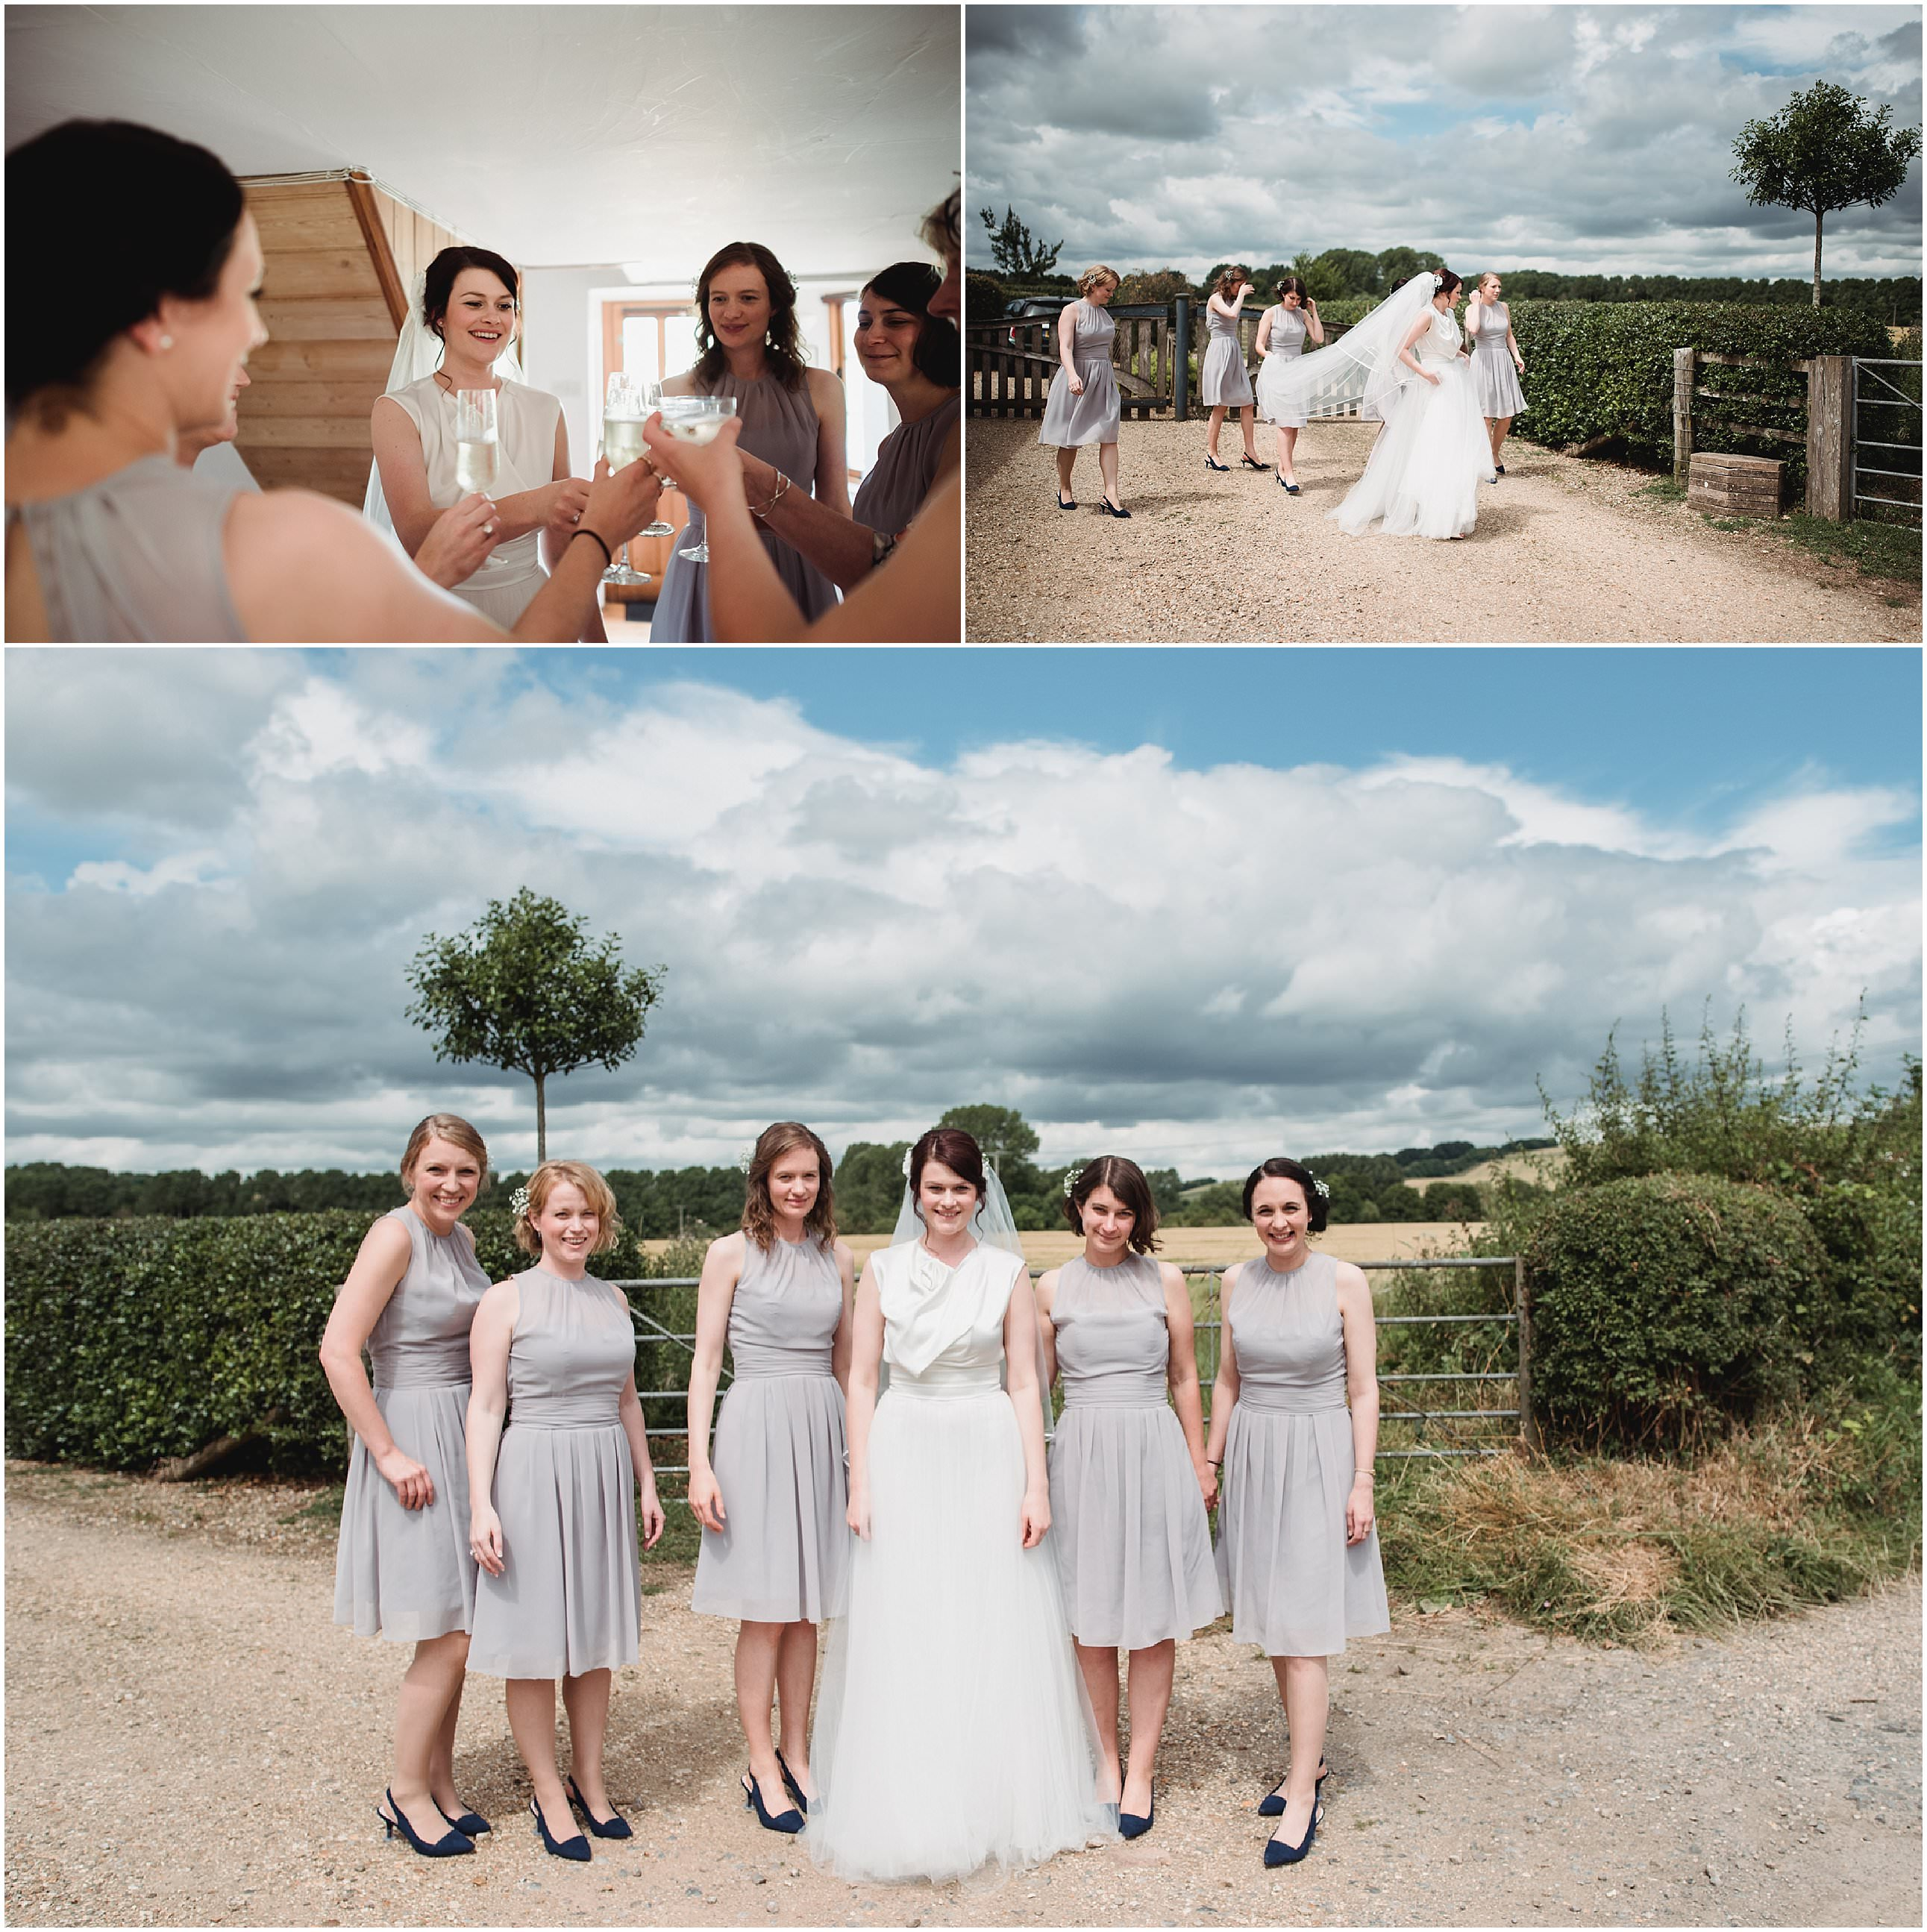 fay & tim wedding at ashley wood farm_0450